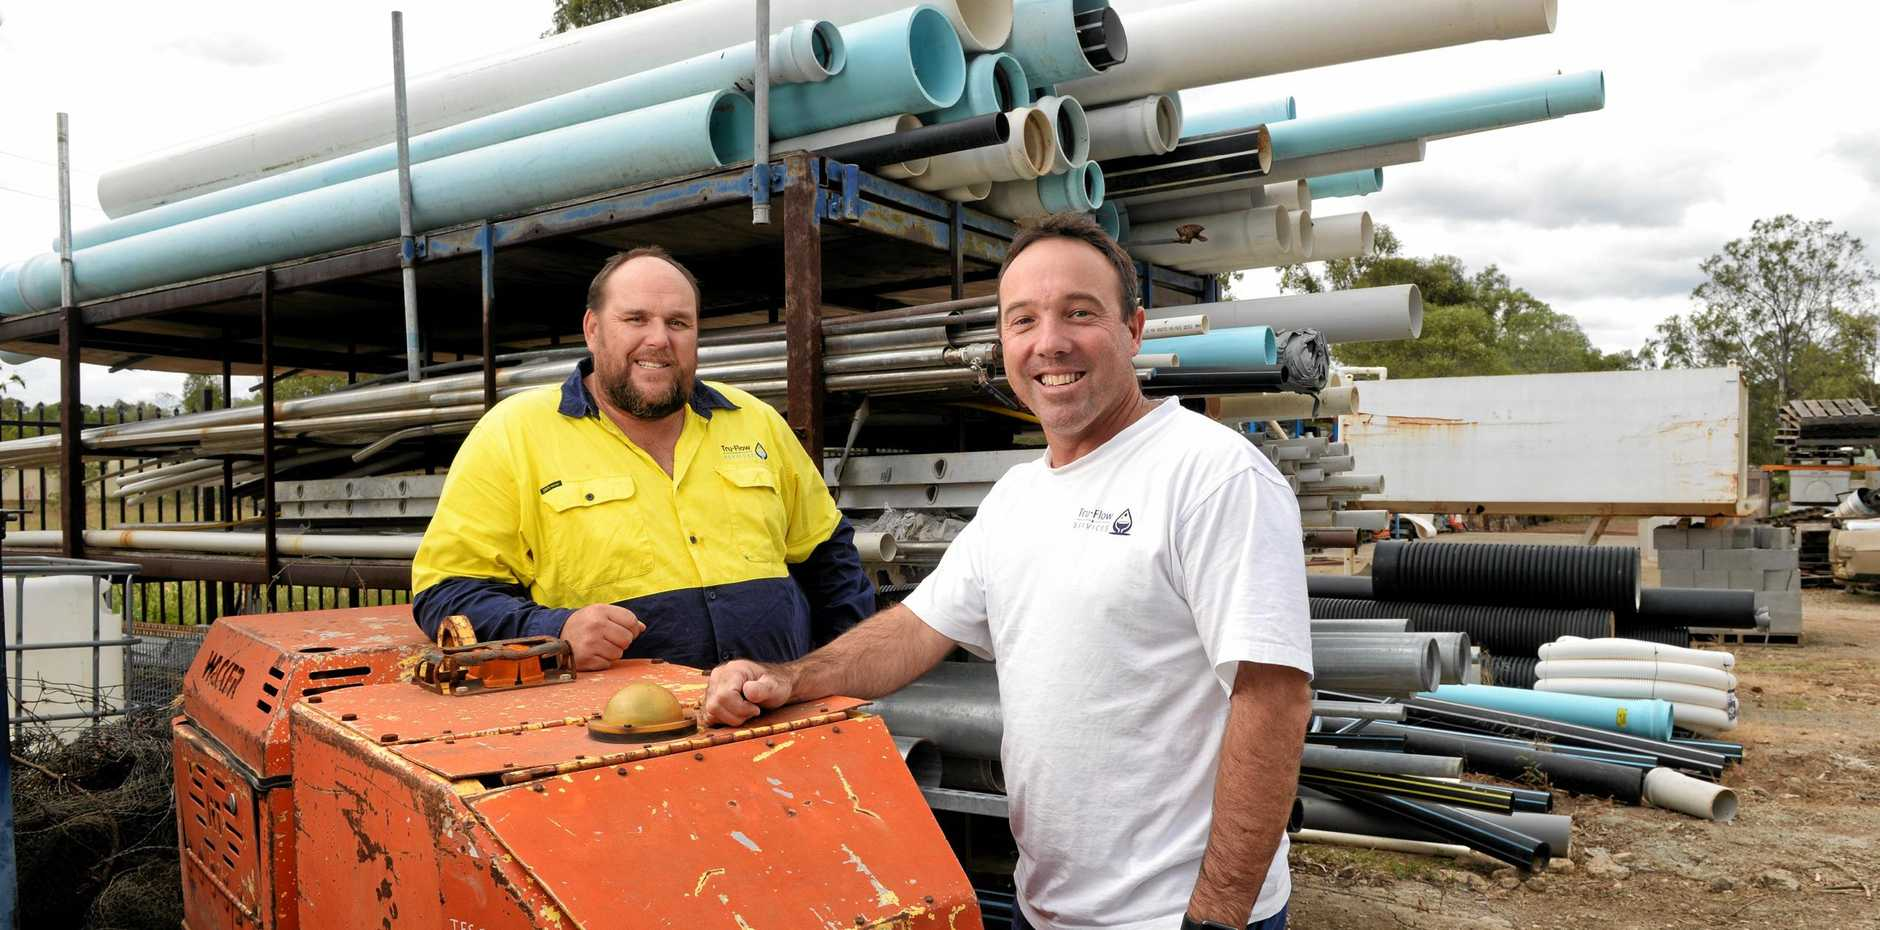 WINNERS: Dan Brassel and Matt Ostrofski from Tru-Flow Services welcomed the state's efforts to hunt dodgy builders.